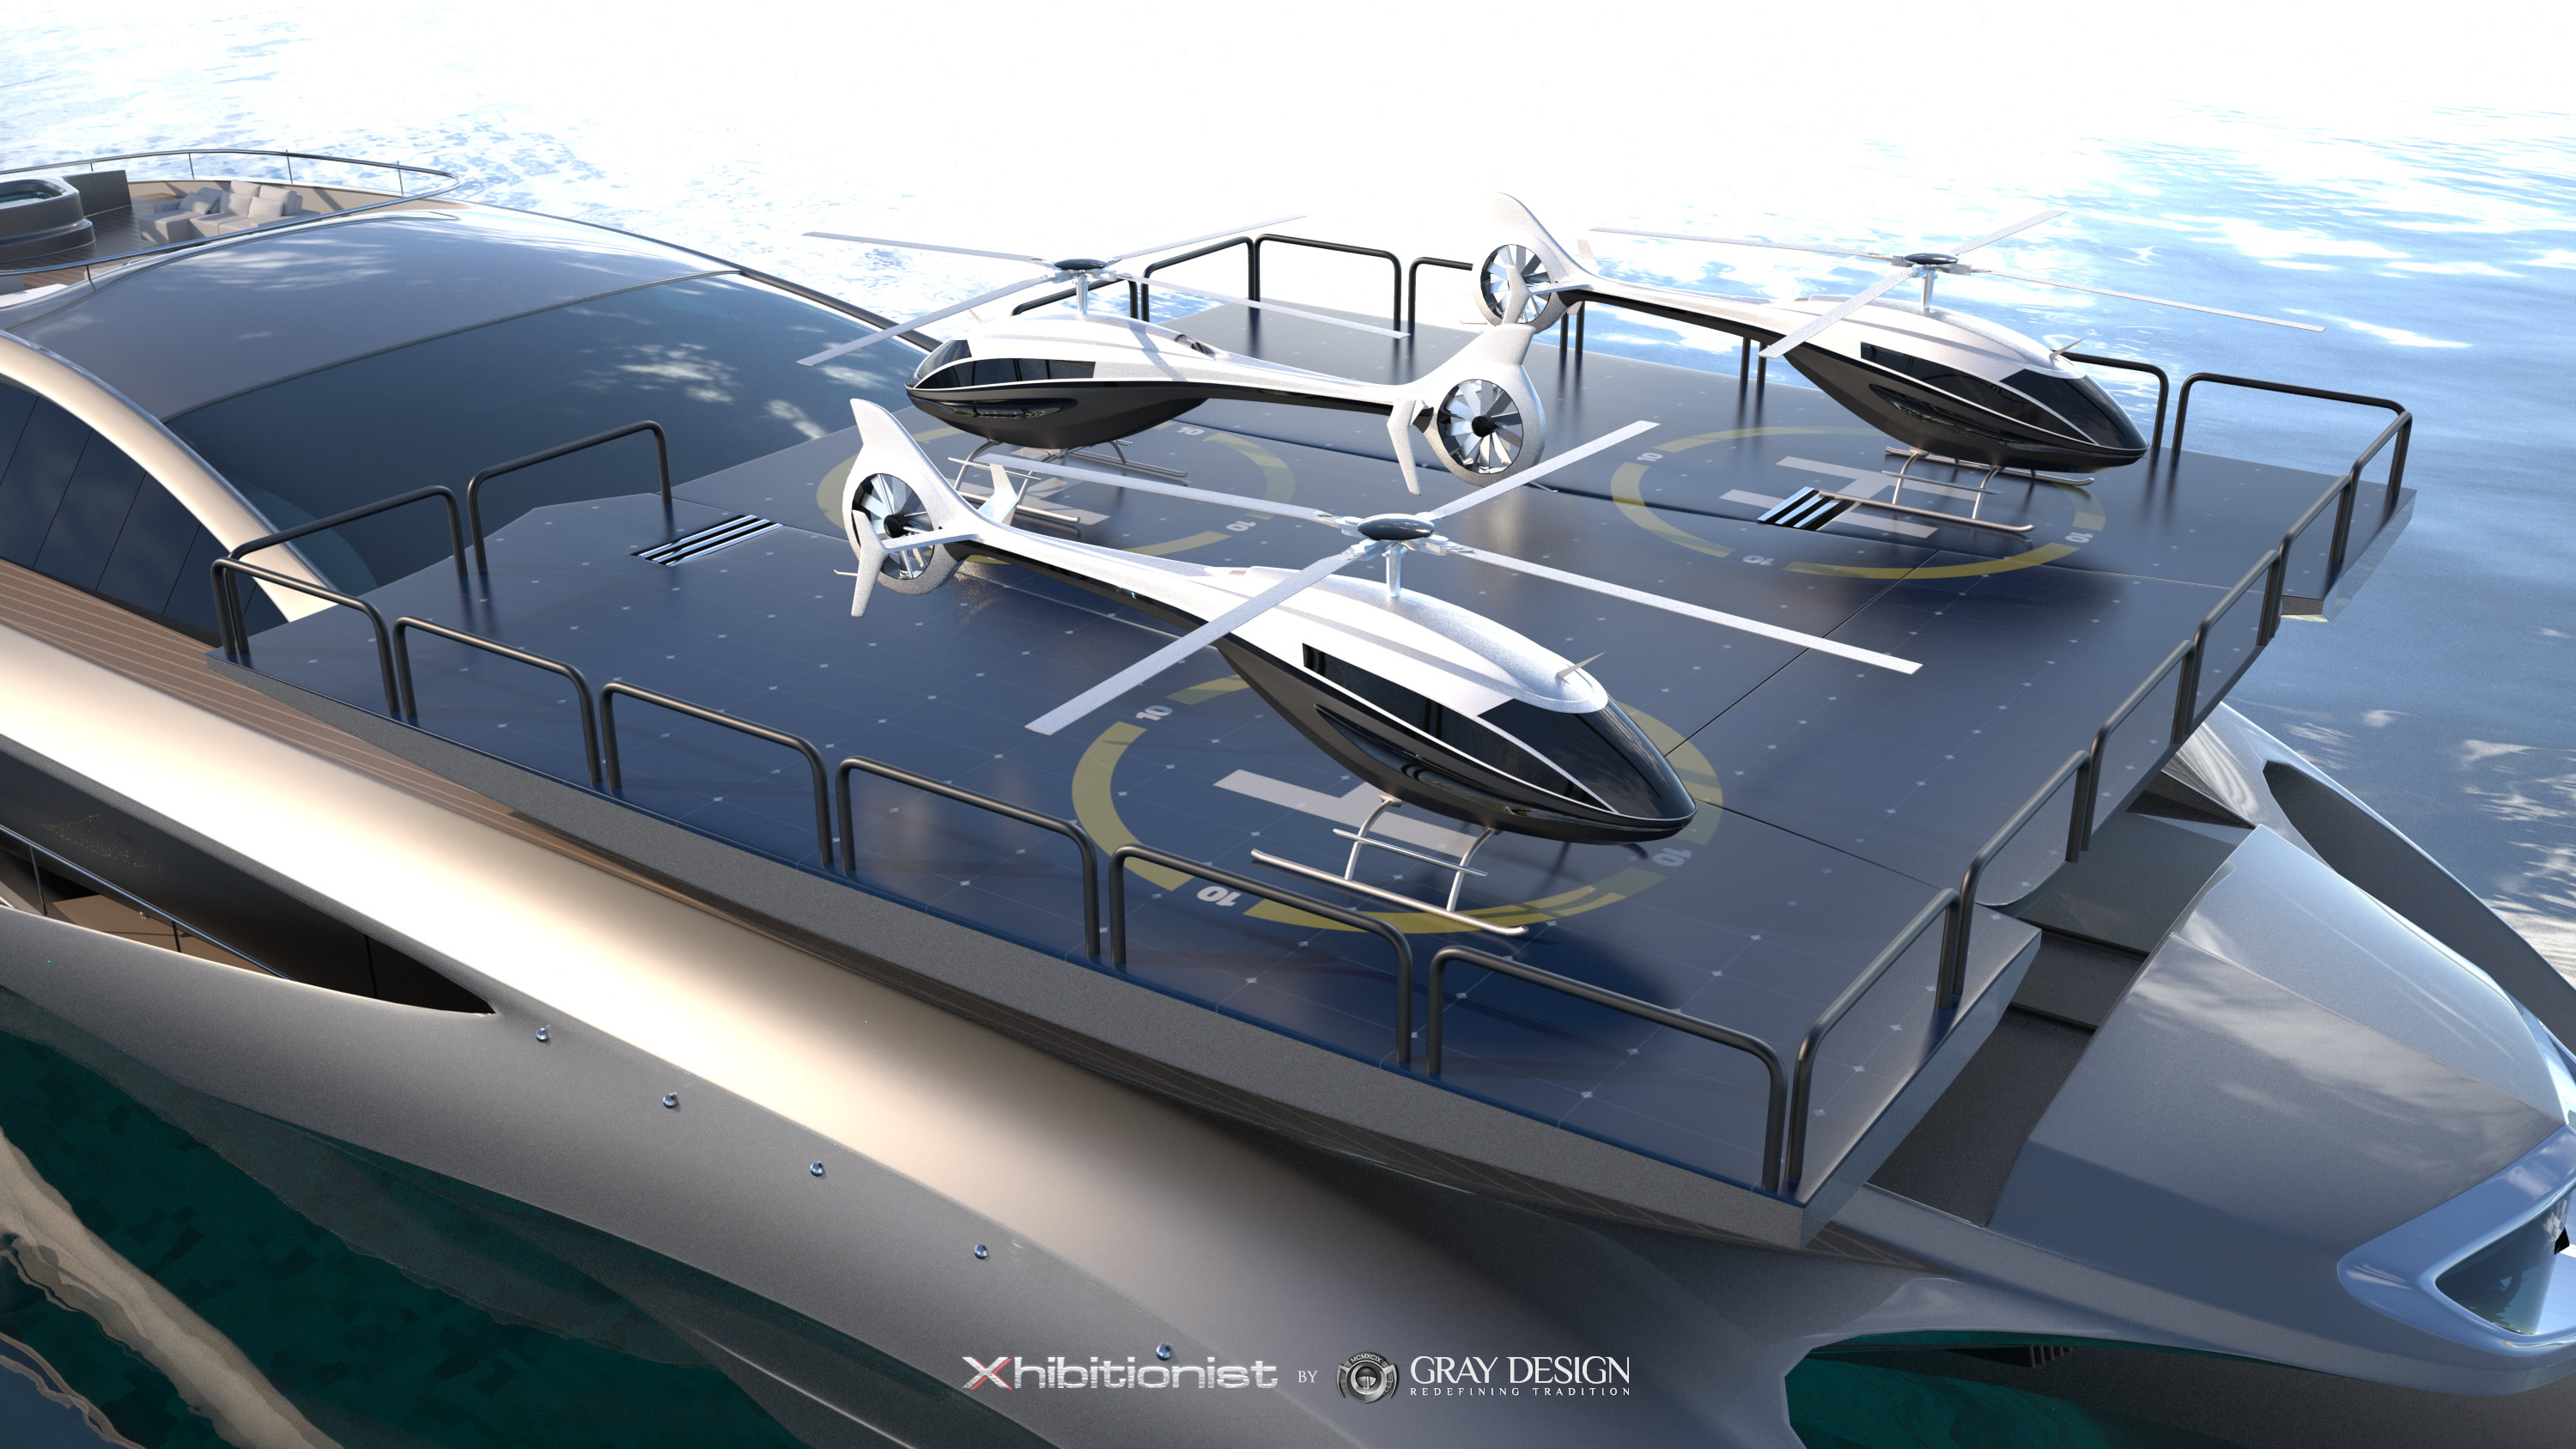 how fast do helicopters go with Xhibitionist Yacht Concept Helipad on 4051 Zombie Alarm as well Aerei Di Carta Dc 3 Best Paper Airplane further What Is So Special About Breaking The Sound Barrier further Fastest Jet Aircraft further Fixed Vs Collective Pitch.